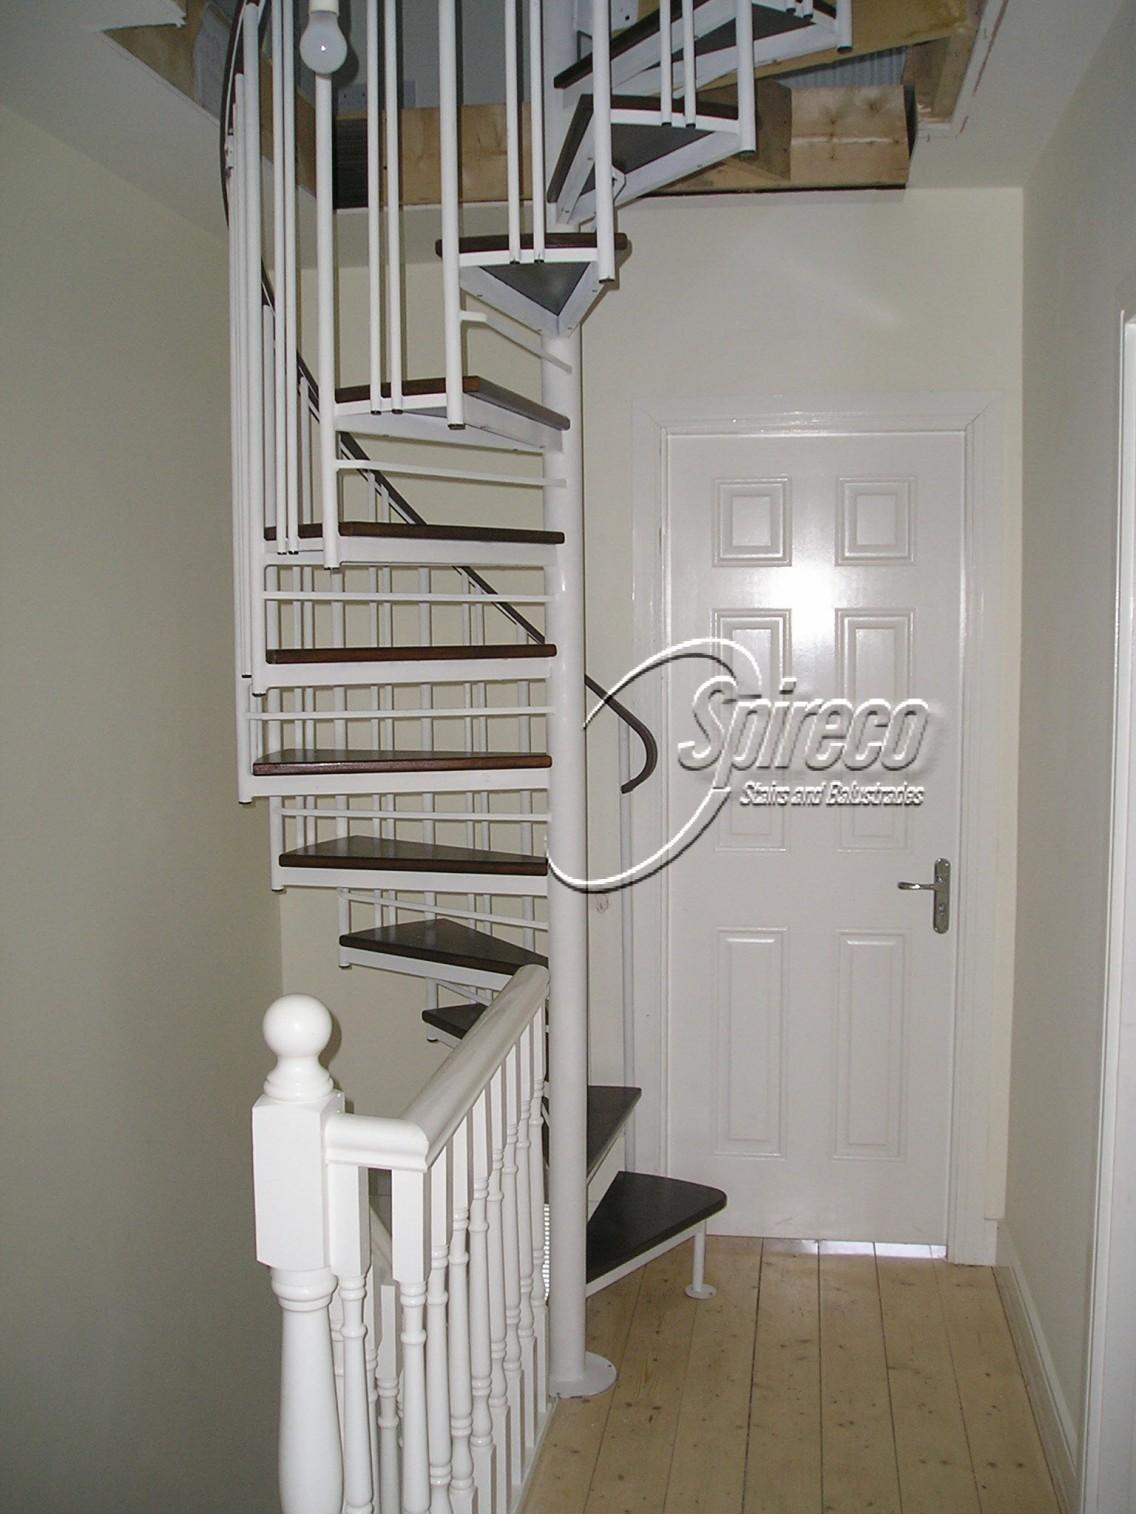 Attic Spiral Stairs Spireco Decoratorist 4335   Spiral Staircase To Attic   Diy   Basement   Remodeling   Creative   Small